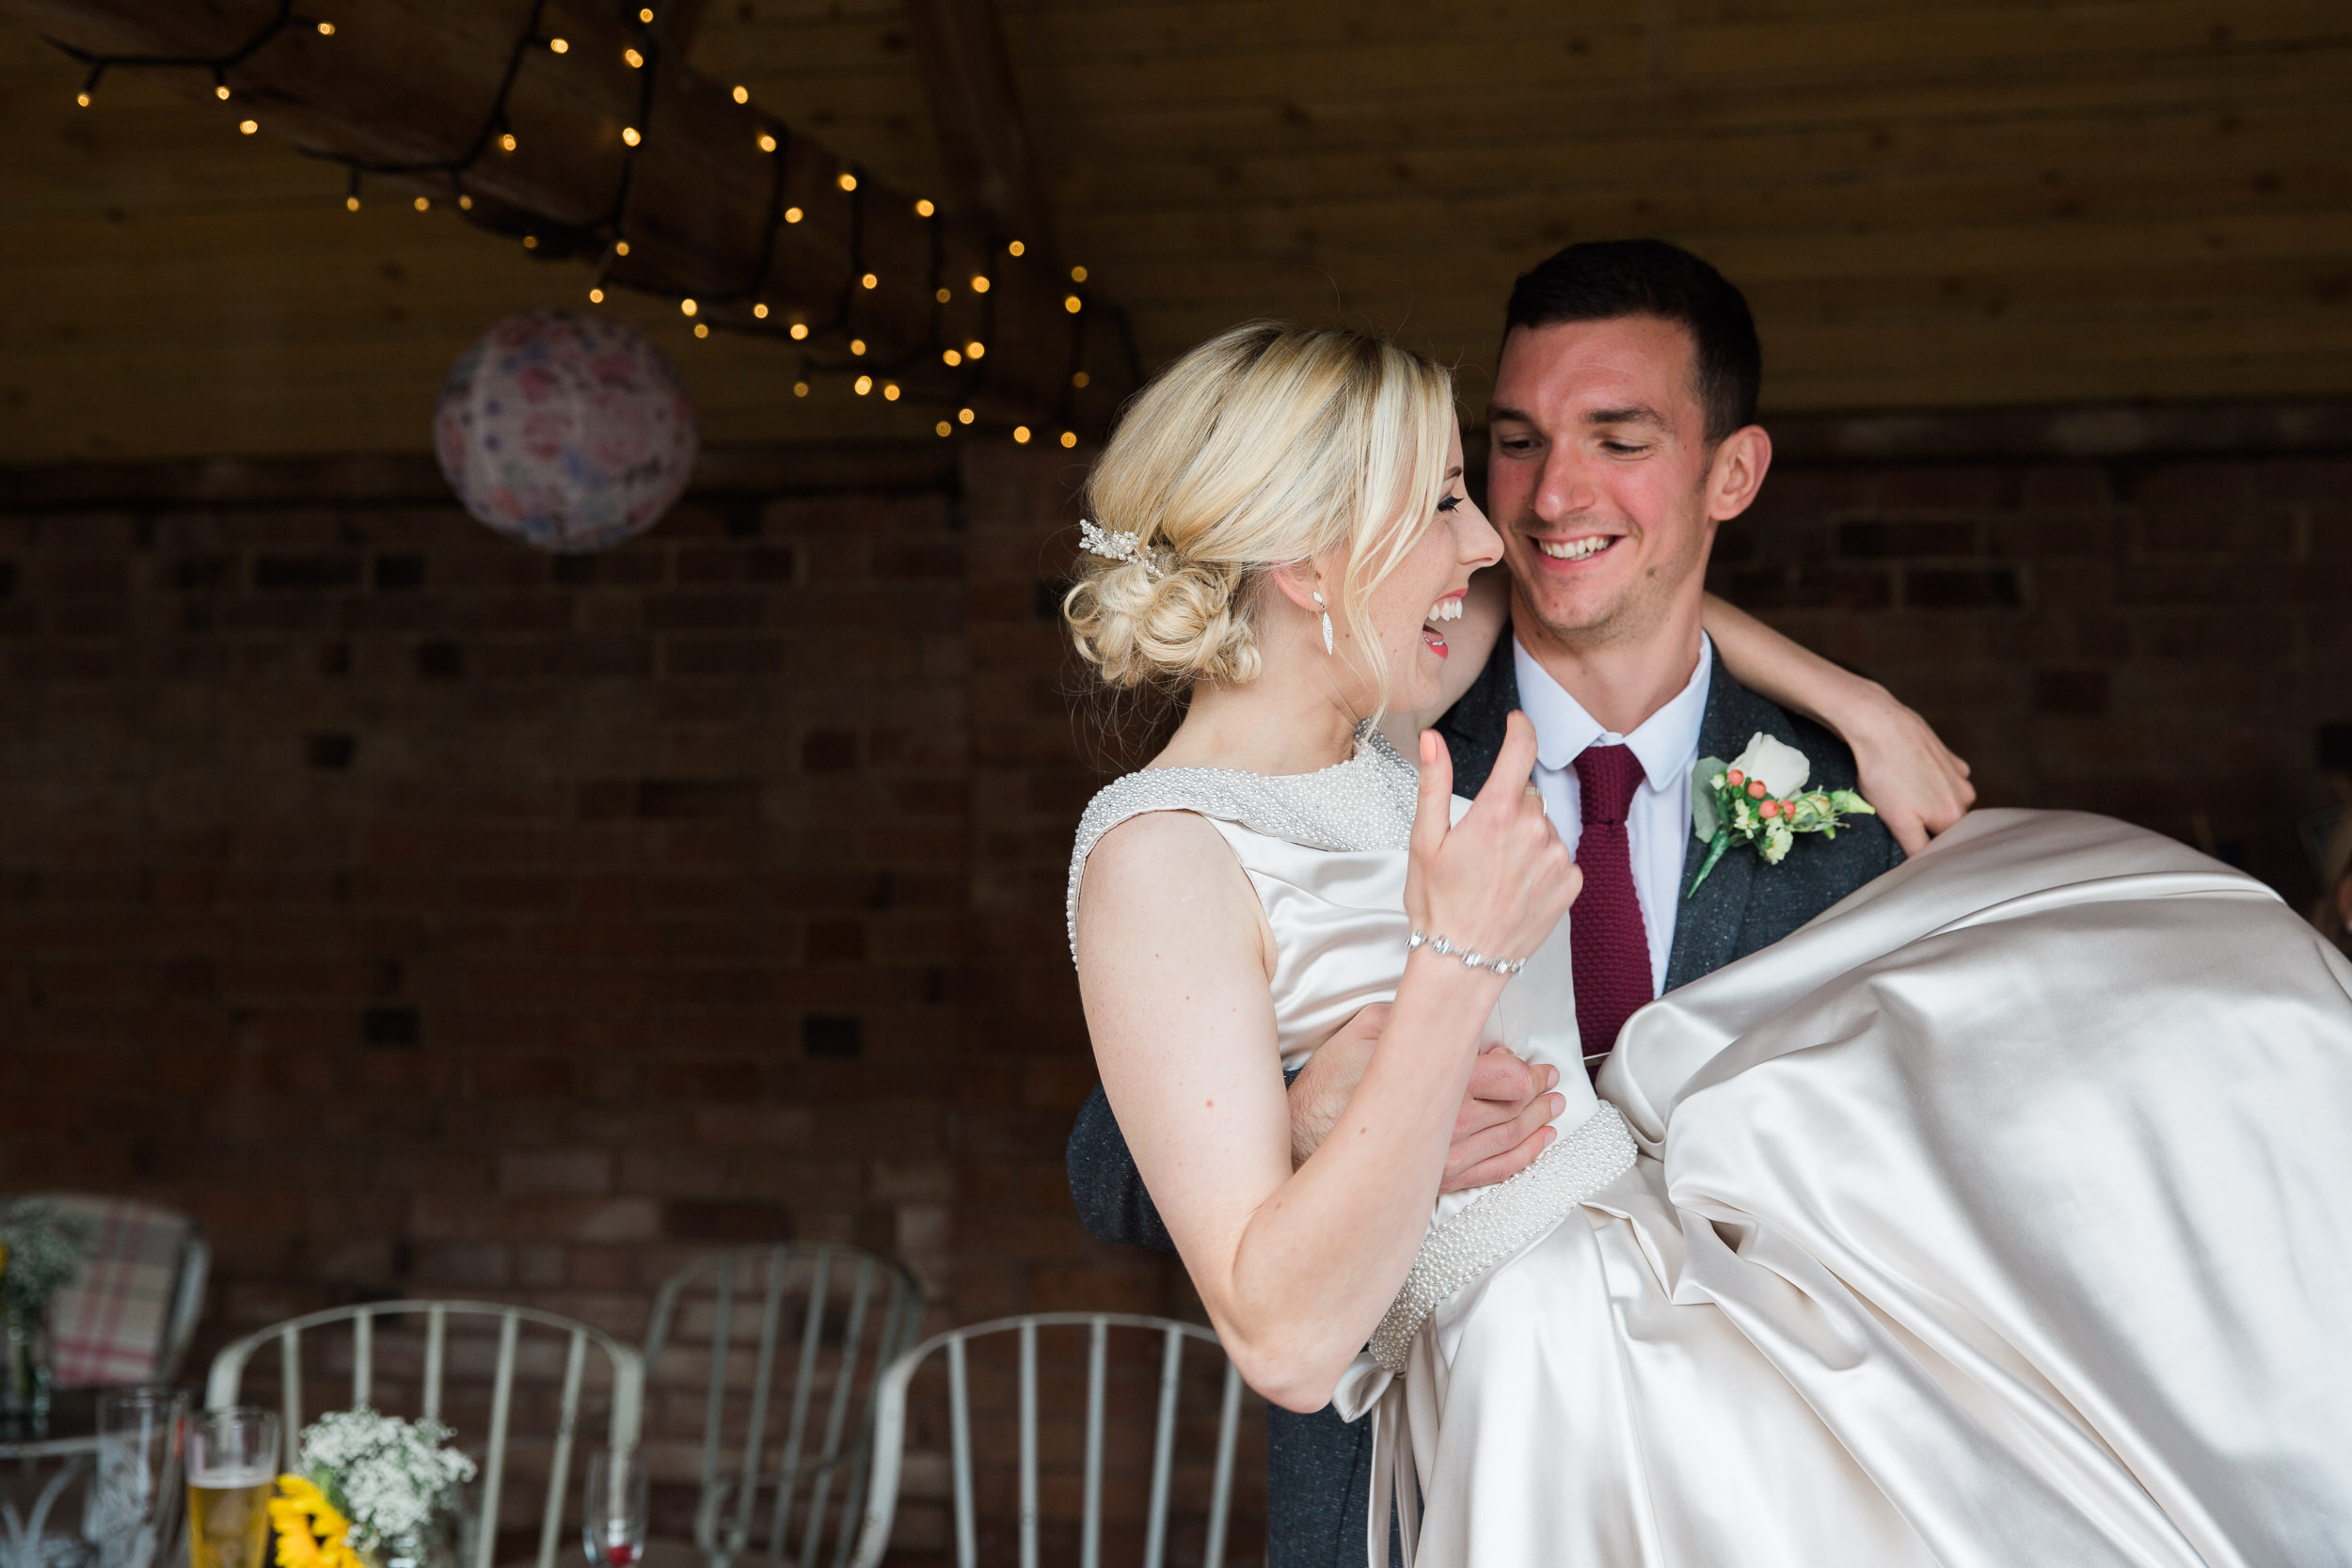 Swallows Nest Barn Chic & Rustic Wedding-110